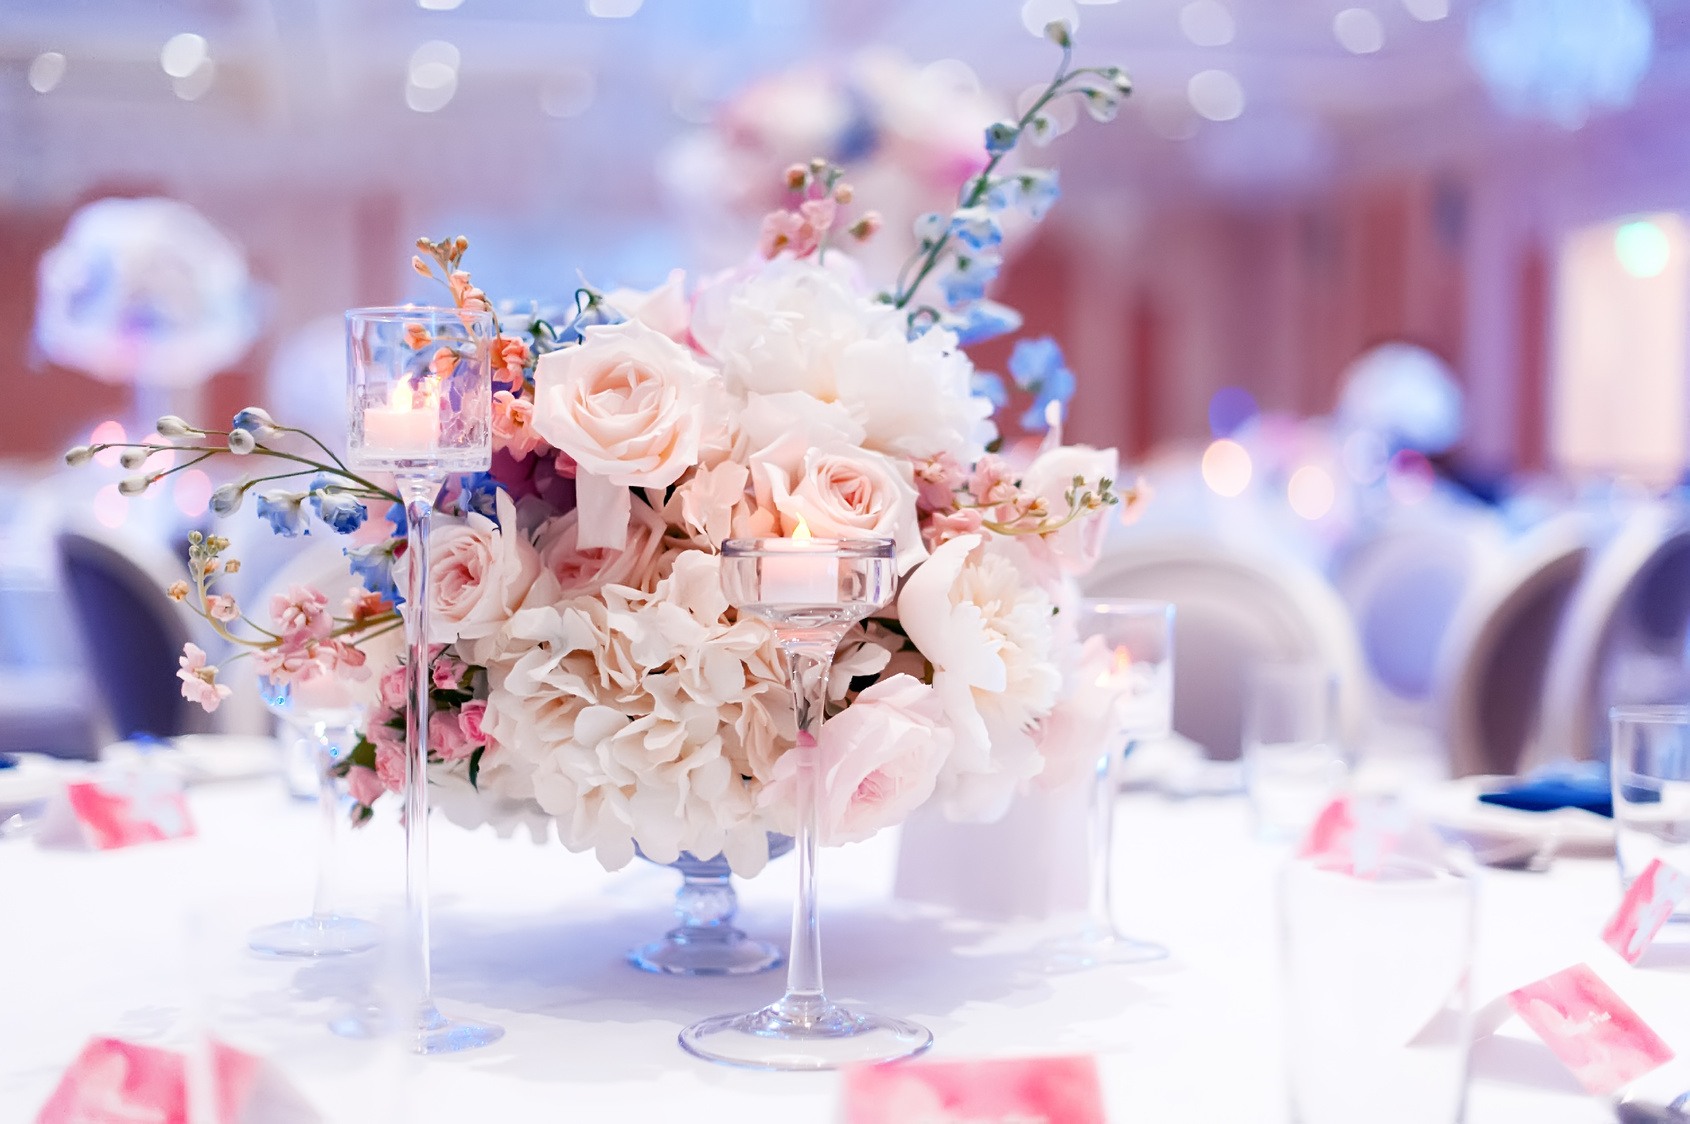 Wedding-Reception-Floral-Centerpiece-2